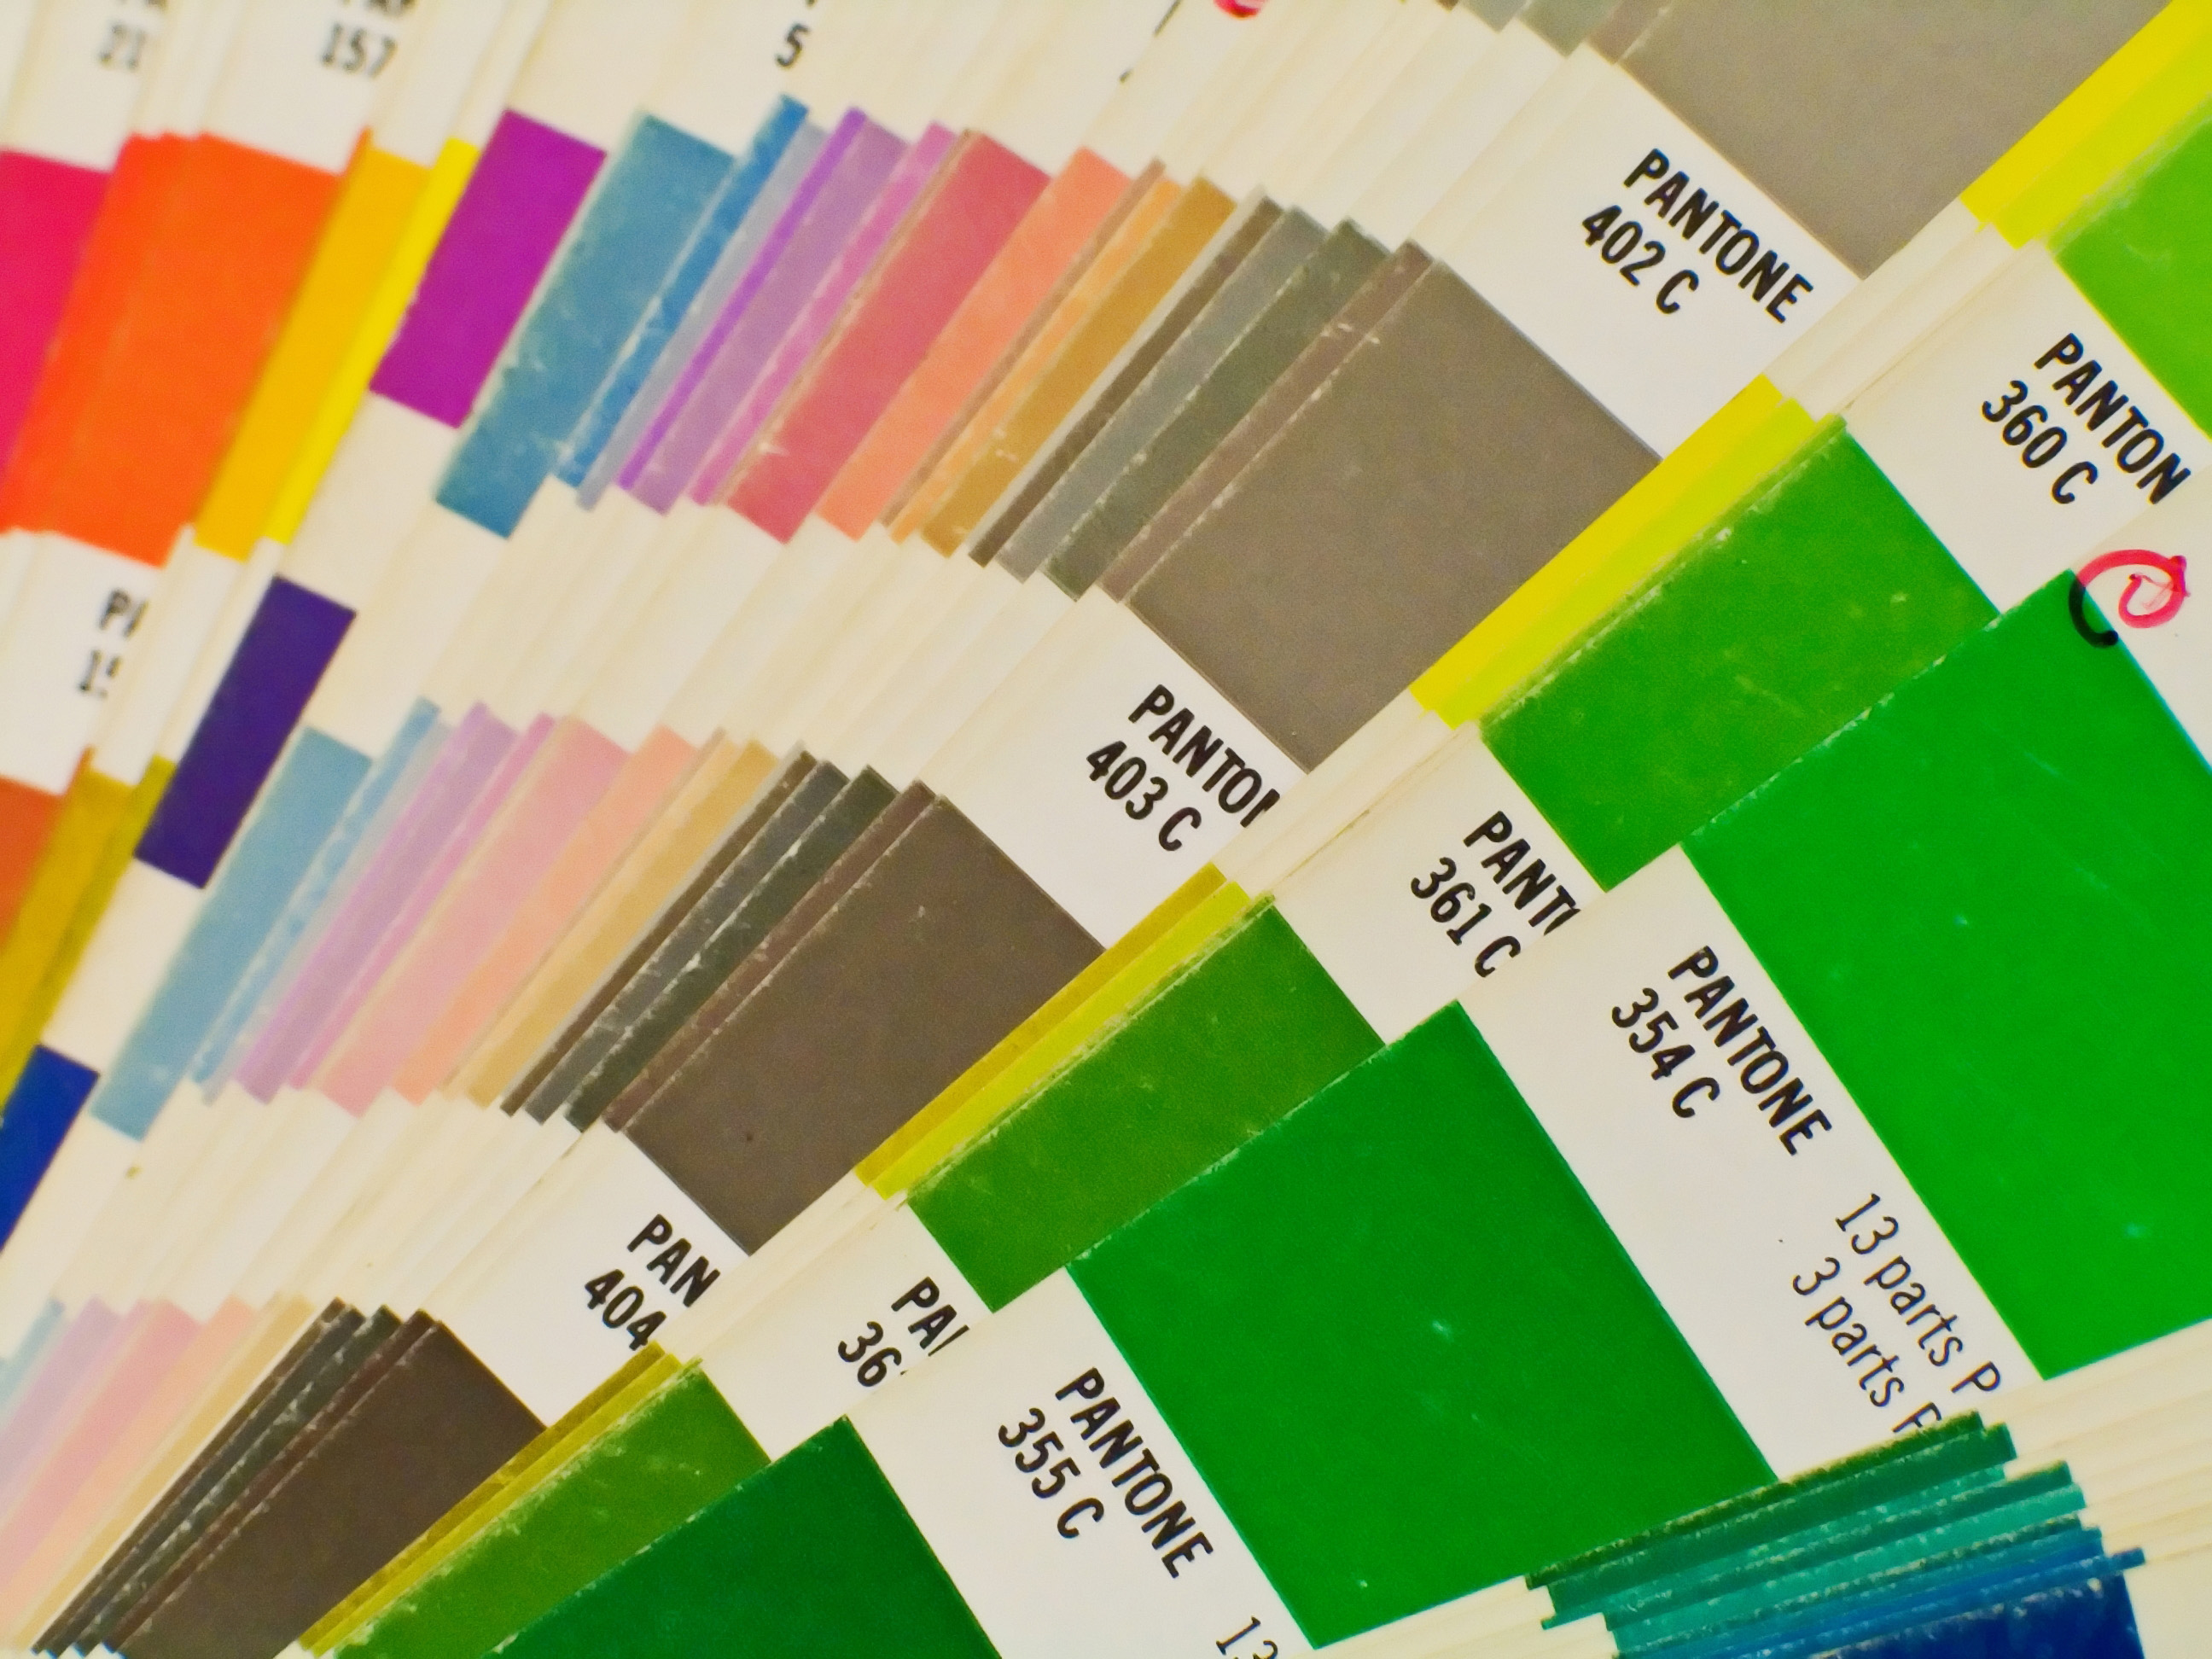 how to find the pantone number in illustrator